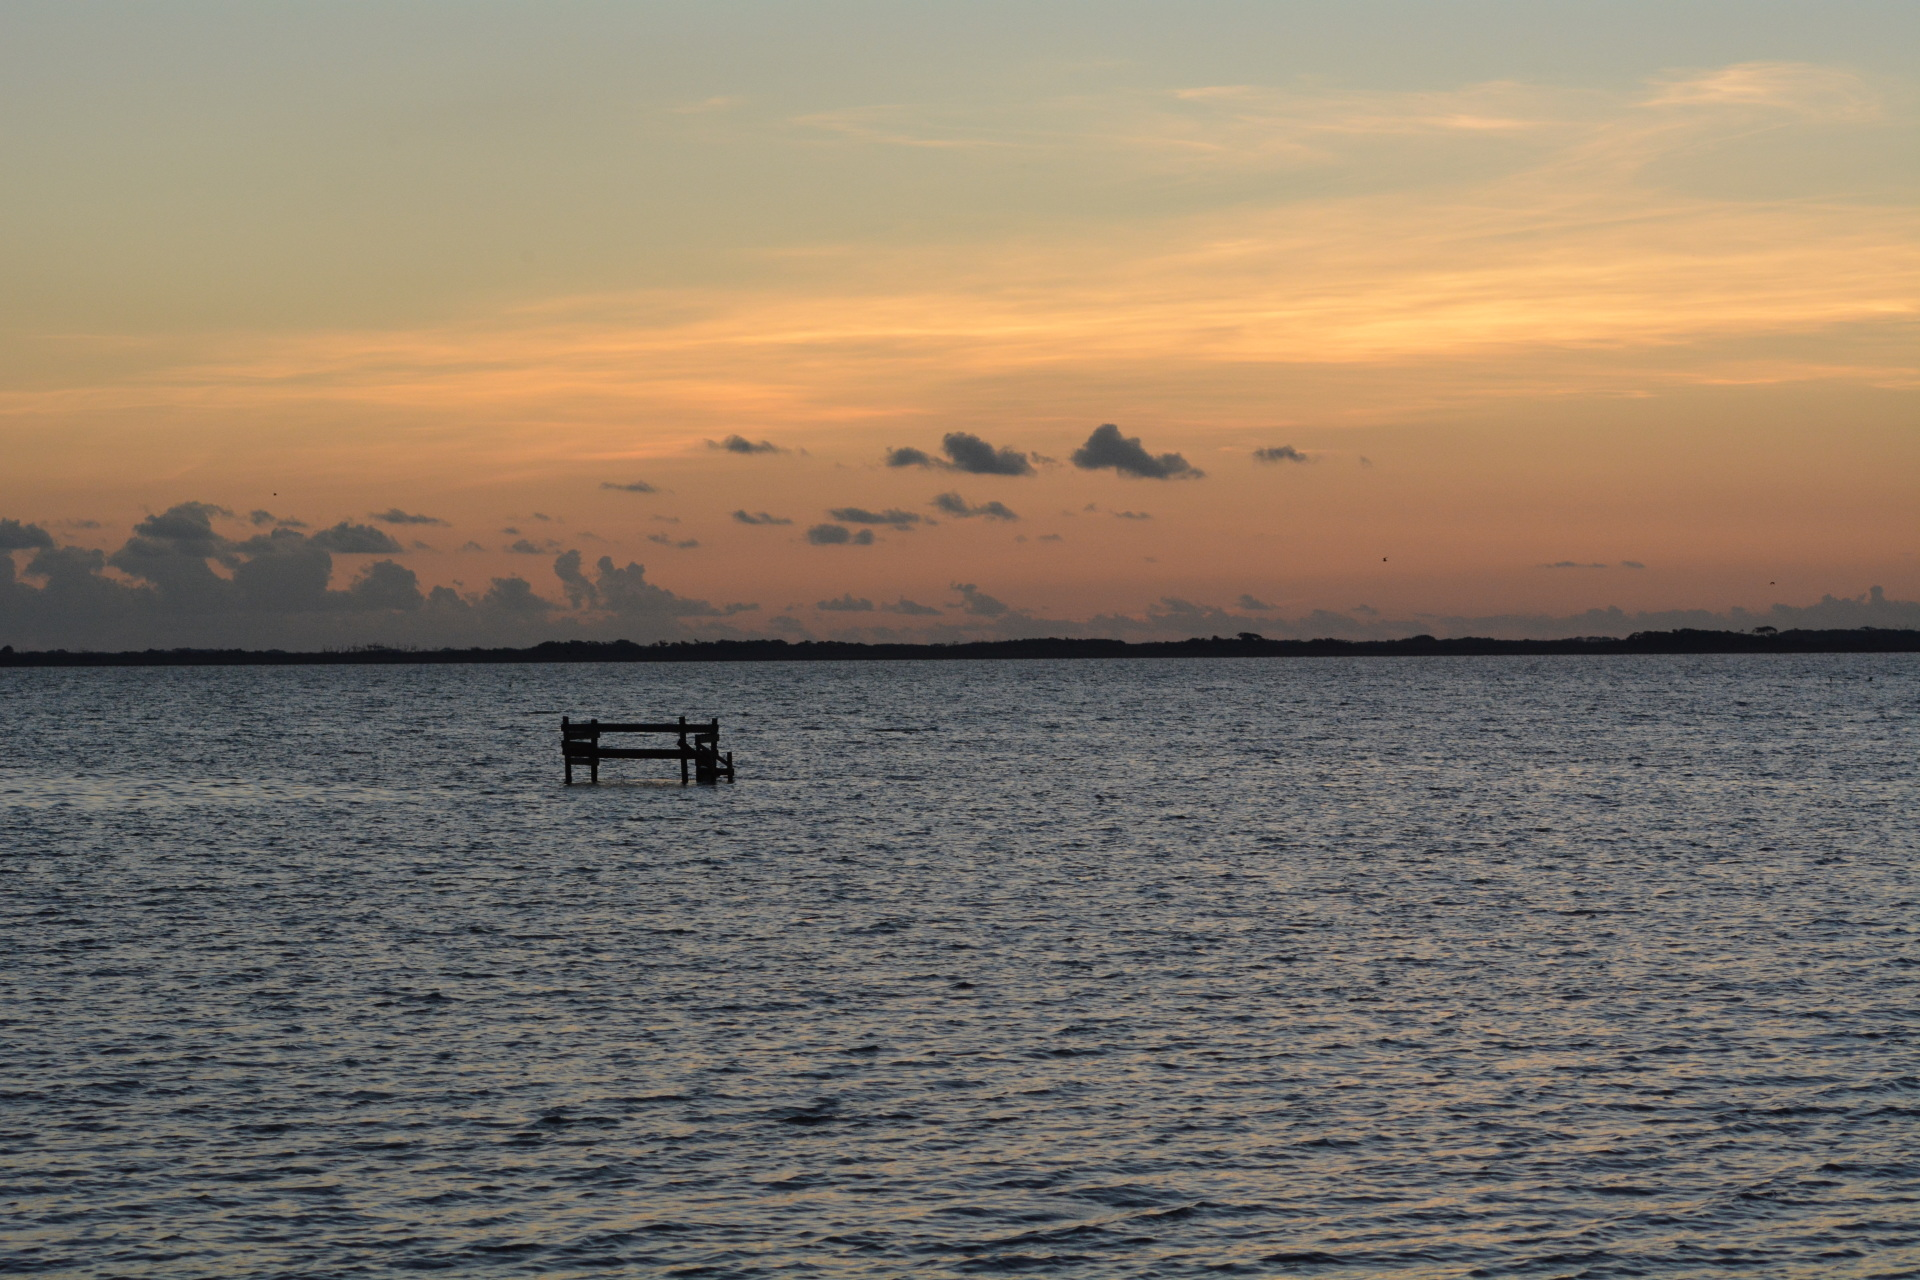 Sunset St. Charles Bay Rockport Texas